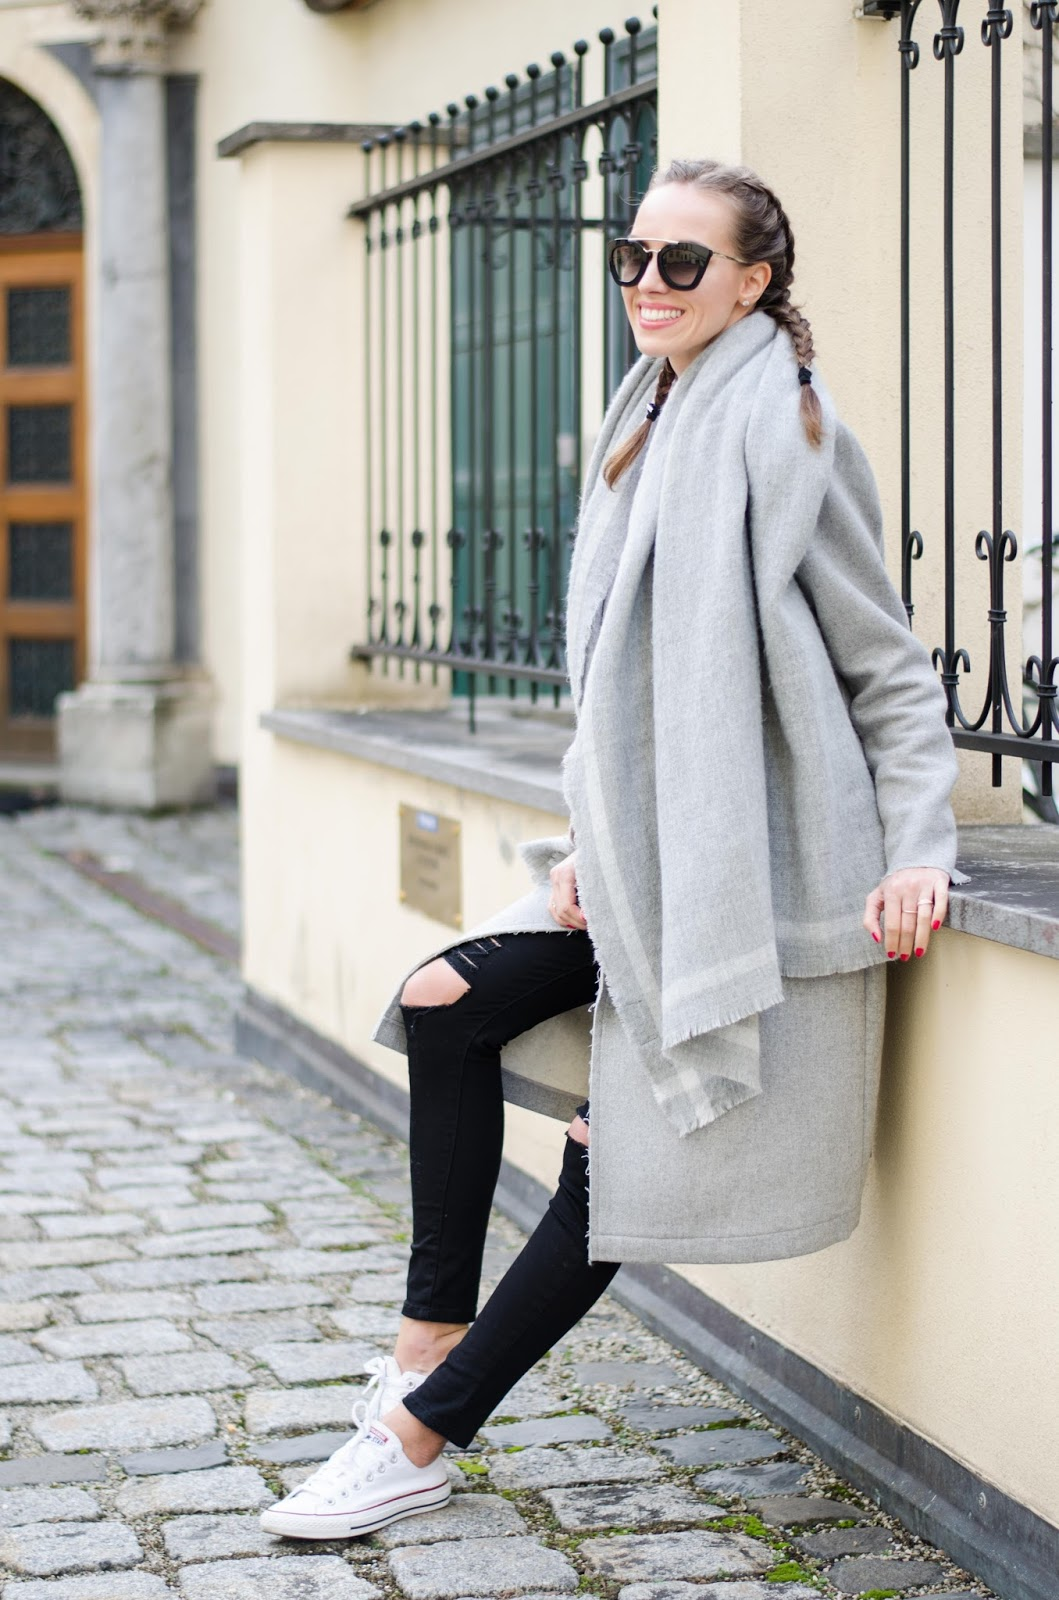 kristjaana mere casual minimal winter outfit french braids